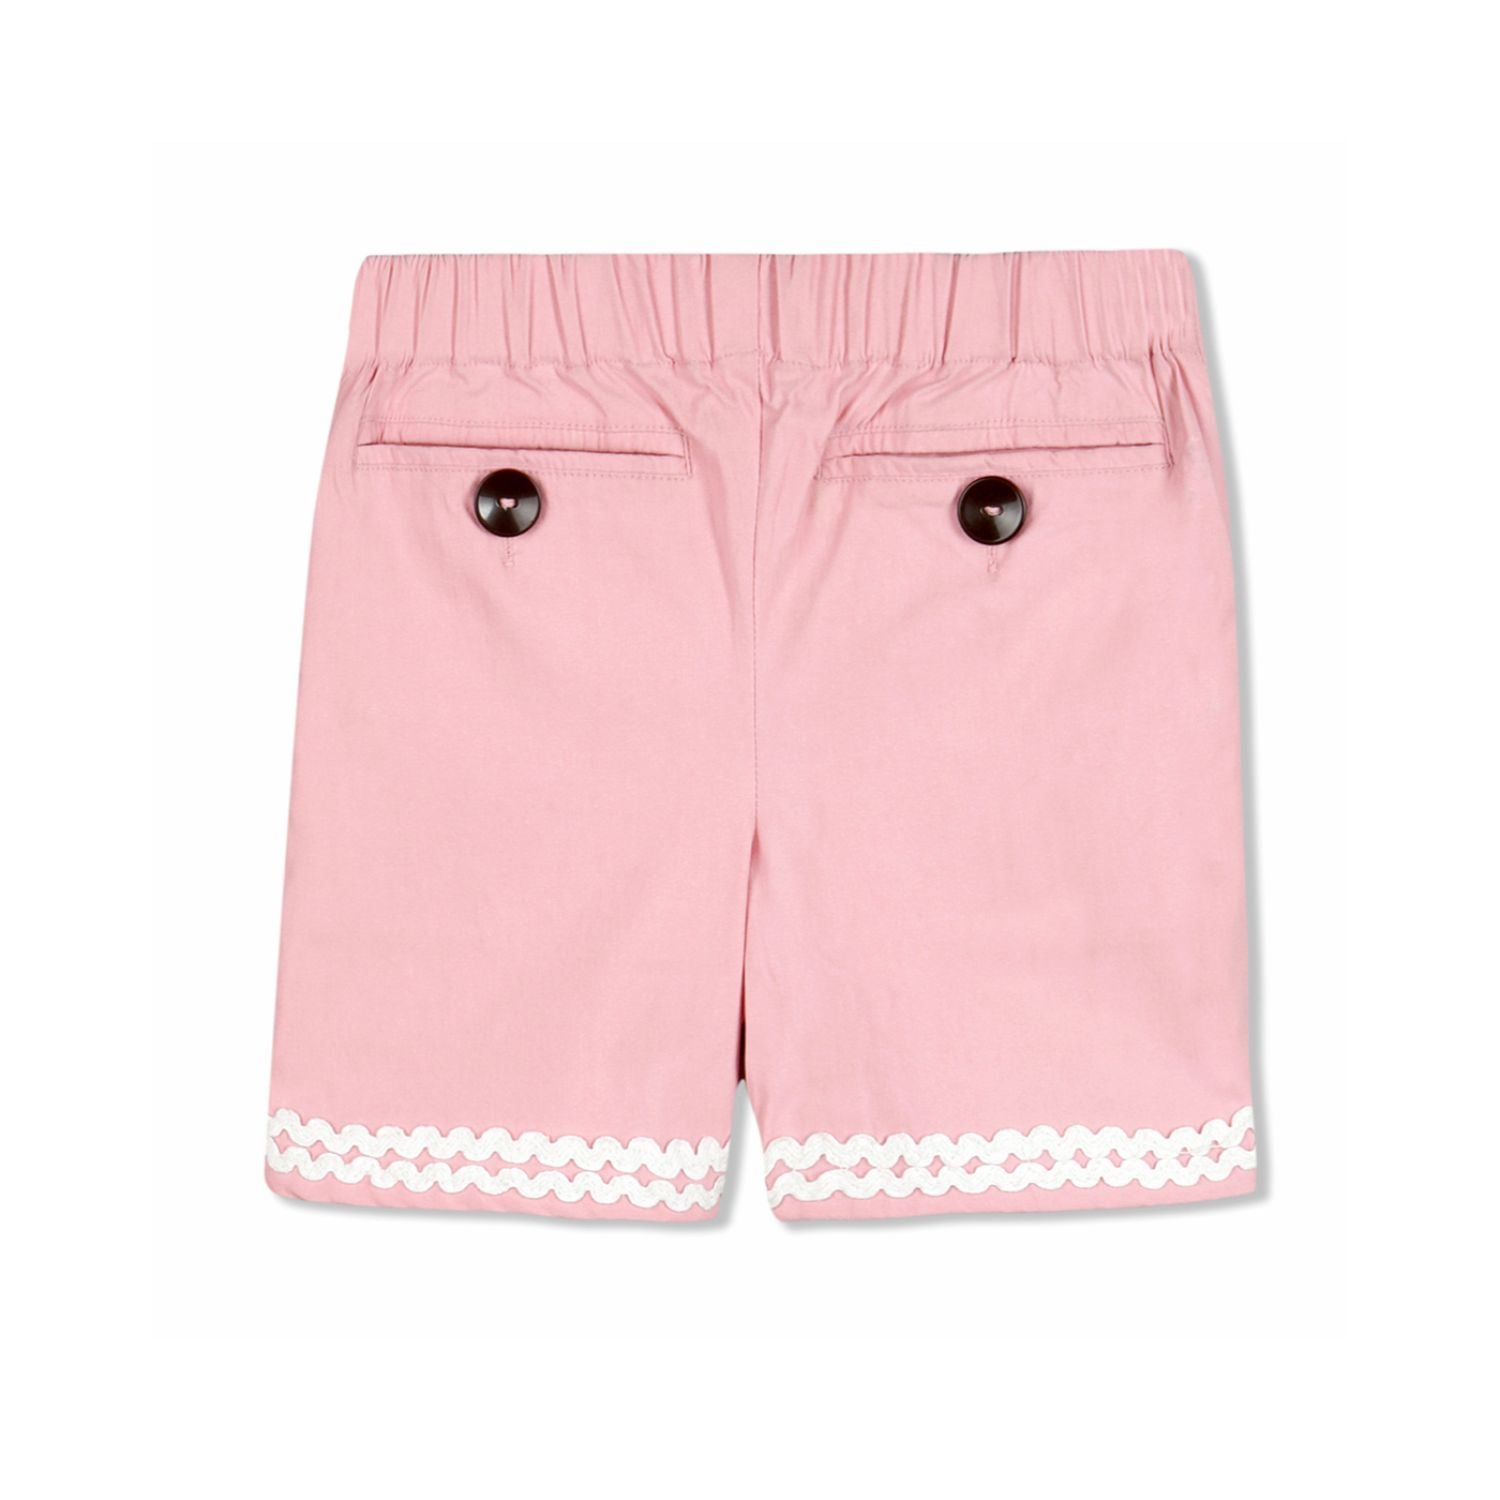 Lace Trim Shorts for Girls